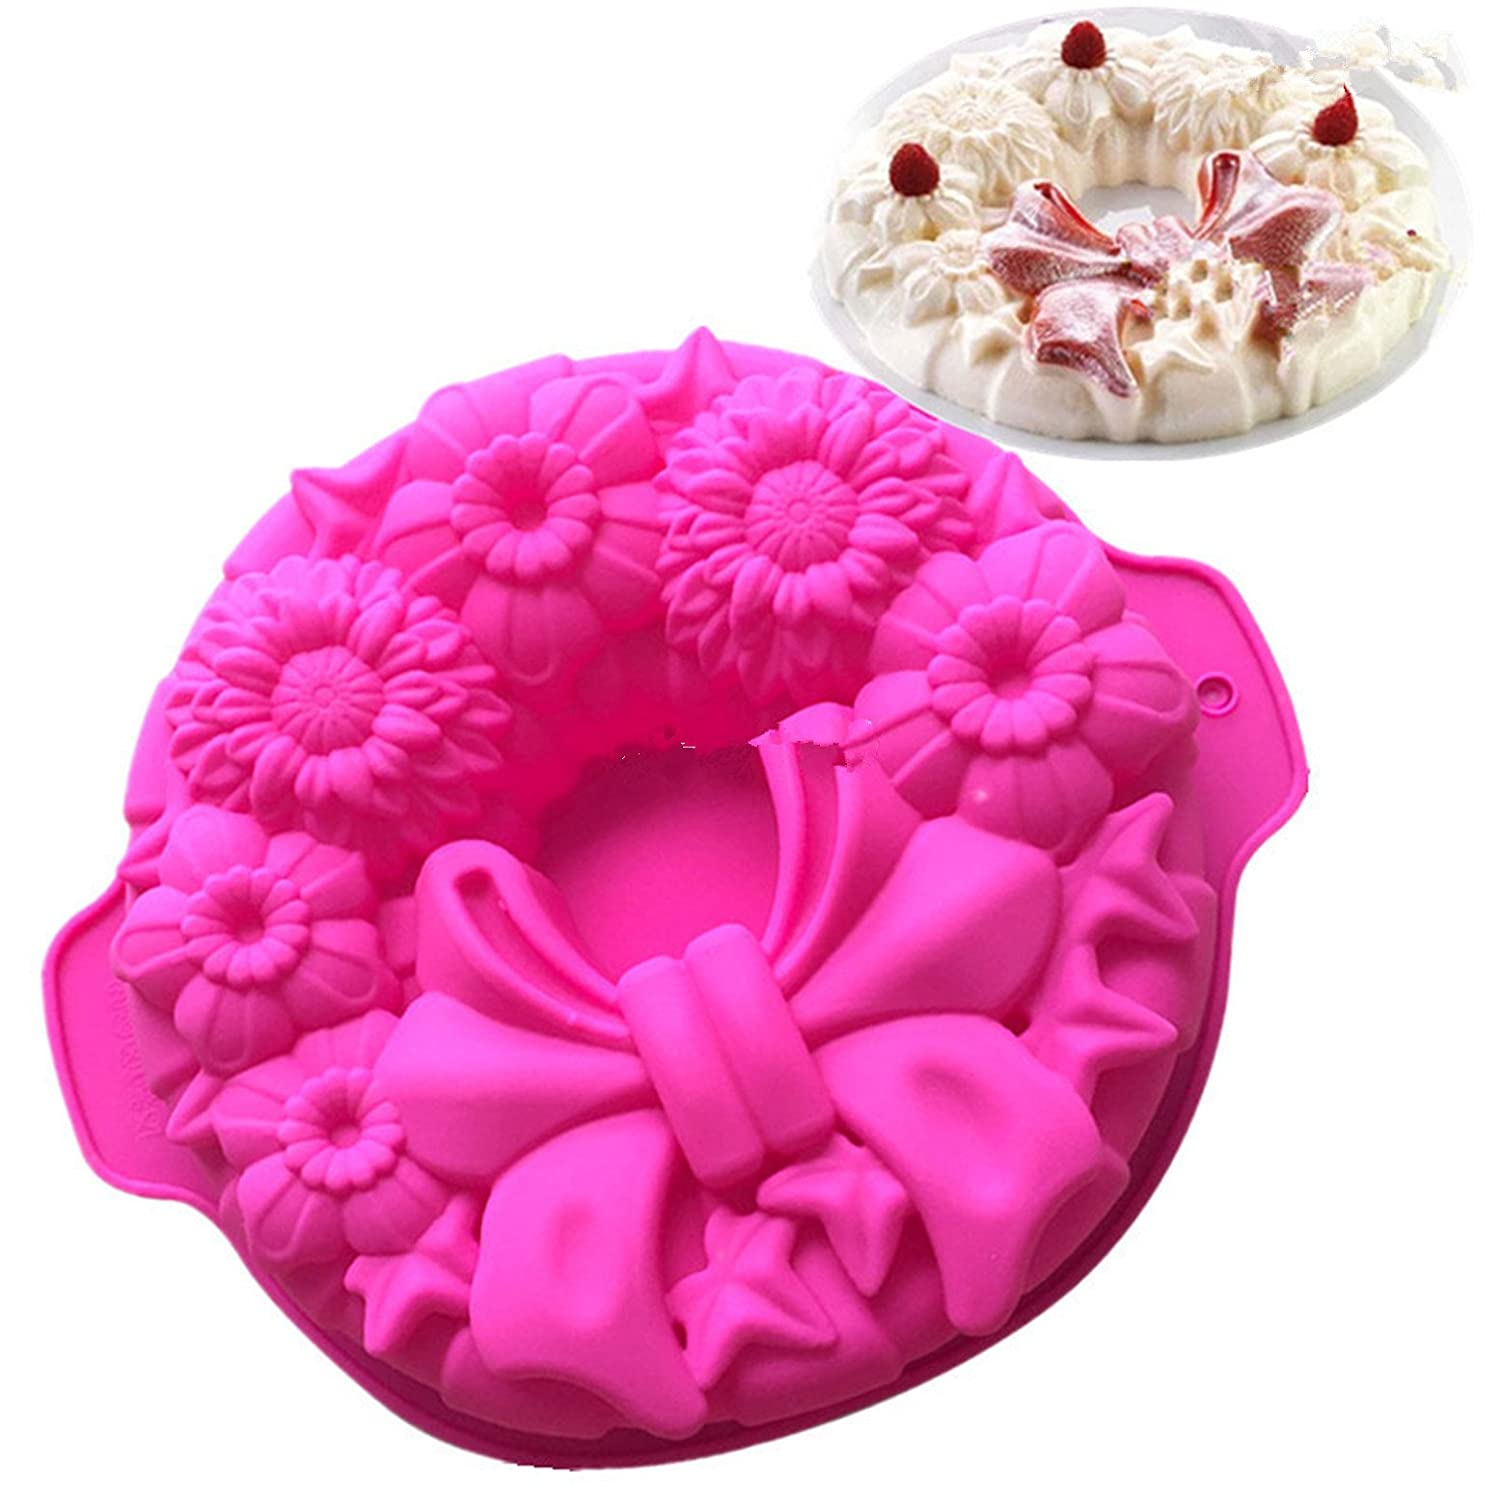 FantasyDay® Silicone Mould, 9.5'' Peacock Tail Birthday Cake Mold Silicone Baking Molds Party Cake Bakeware for Your Birthday Dessert, Cake, Bread, Tart, Pie, Flan and More